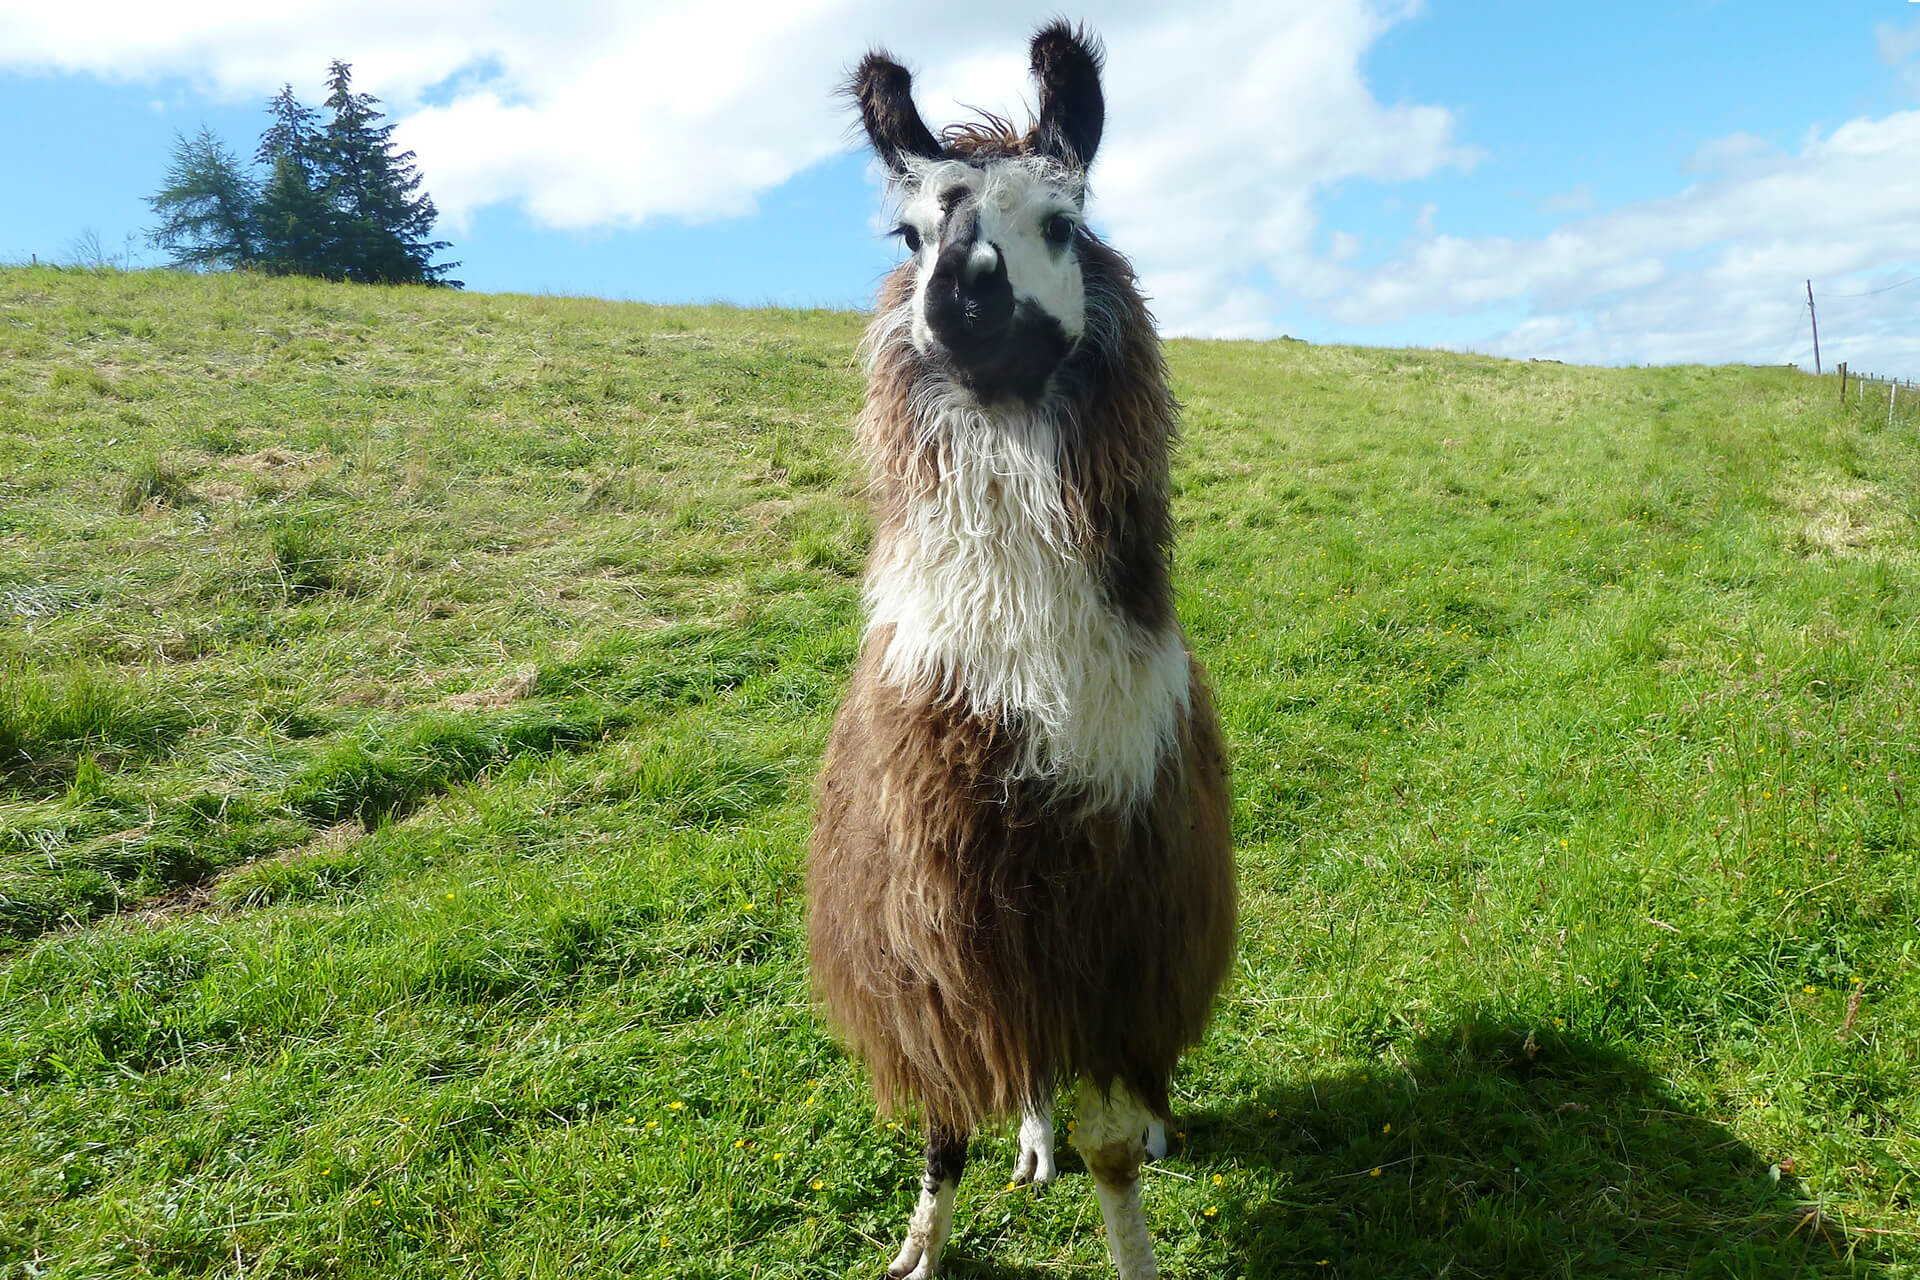 A llama standing in a grass field in Glenshee